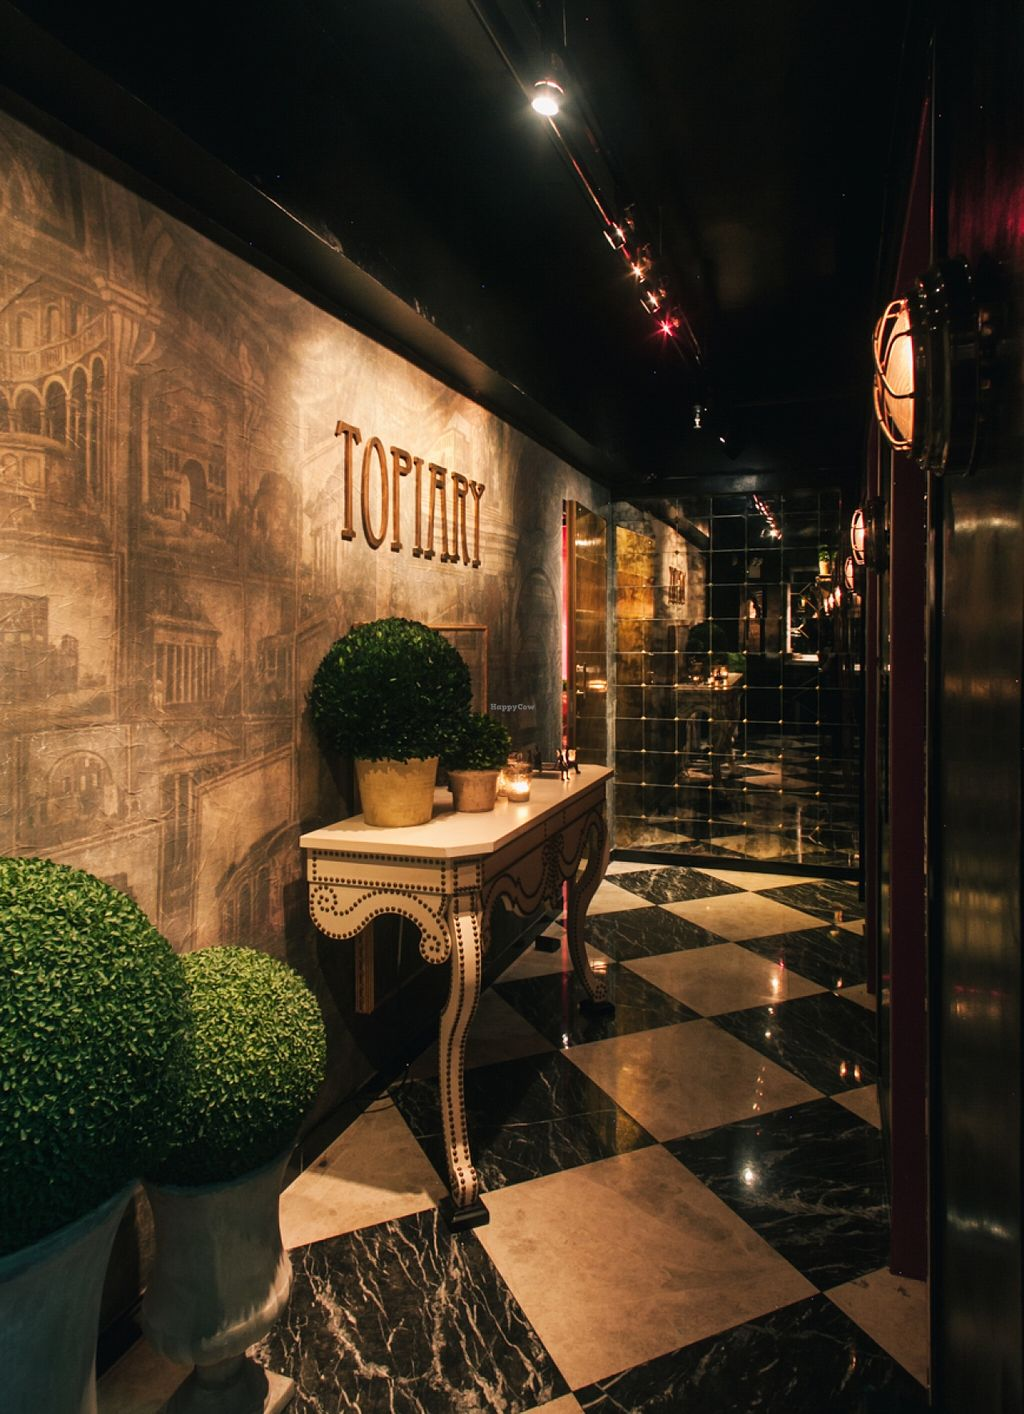 """Photo of Topiary  by <a href=""""/members/profile/Stevie"""">Stevie</a> <br/>Corridor <br/> October 6, 2015  - <a href='/contact/abuse/image/64223/120459'>Report</a>"""